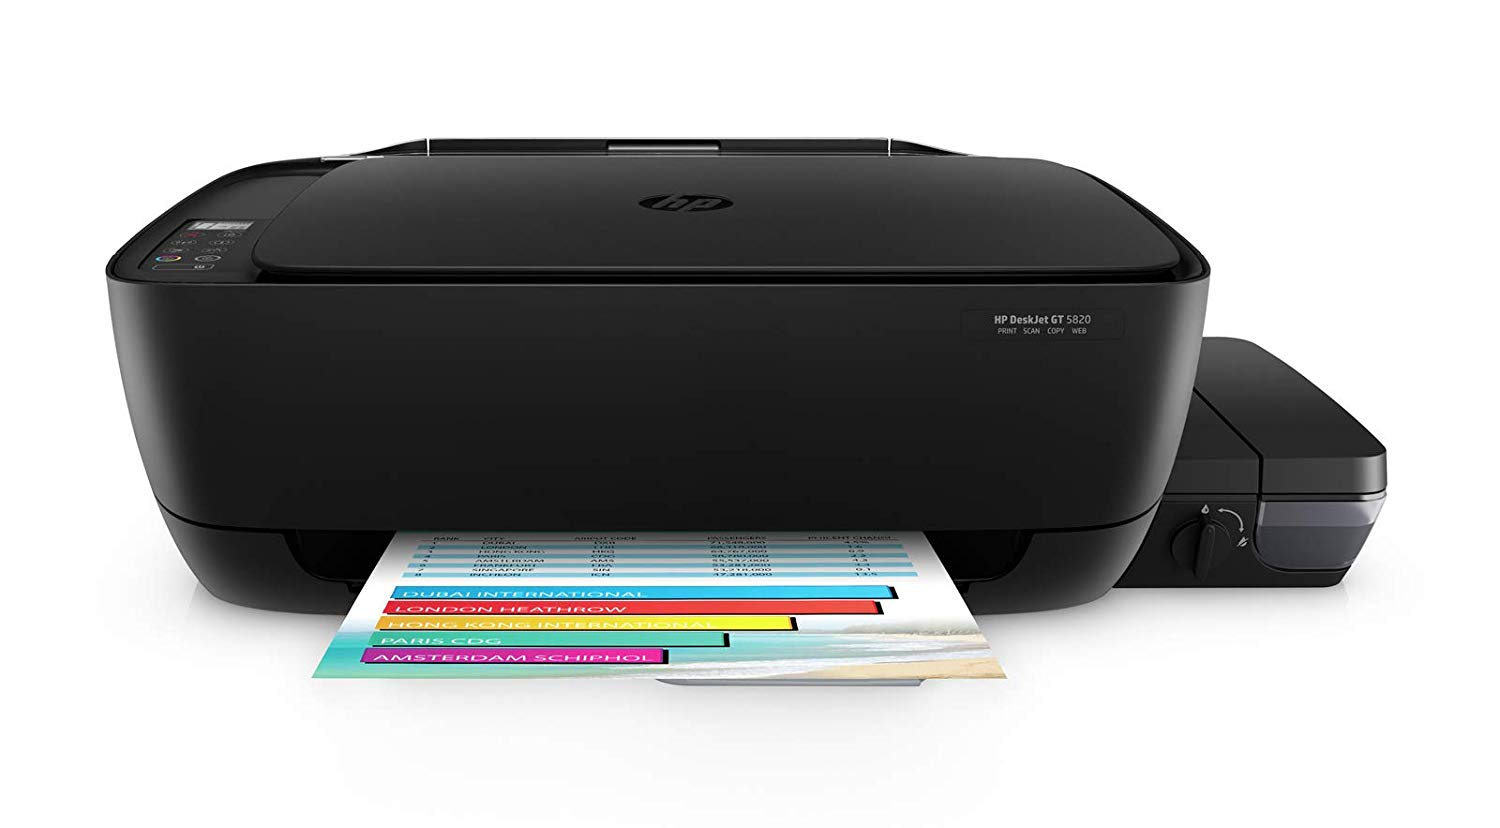 hp officejet 6000 wireless driver download